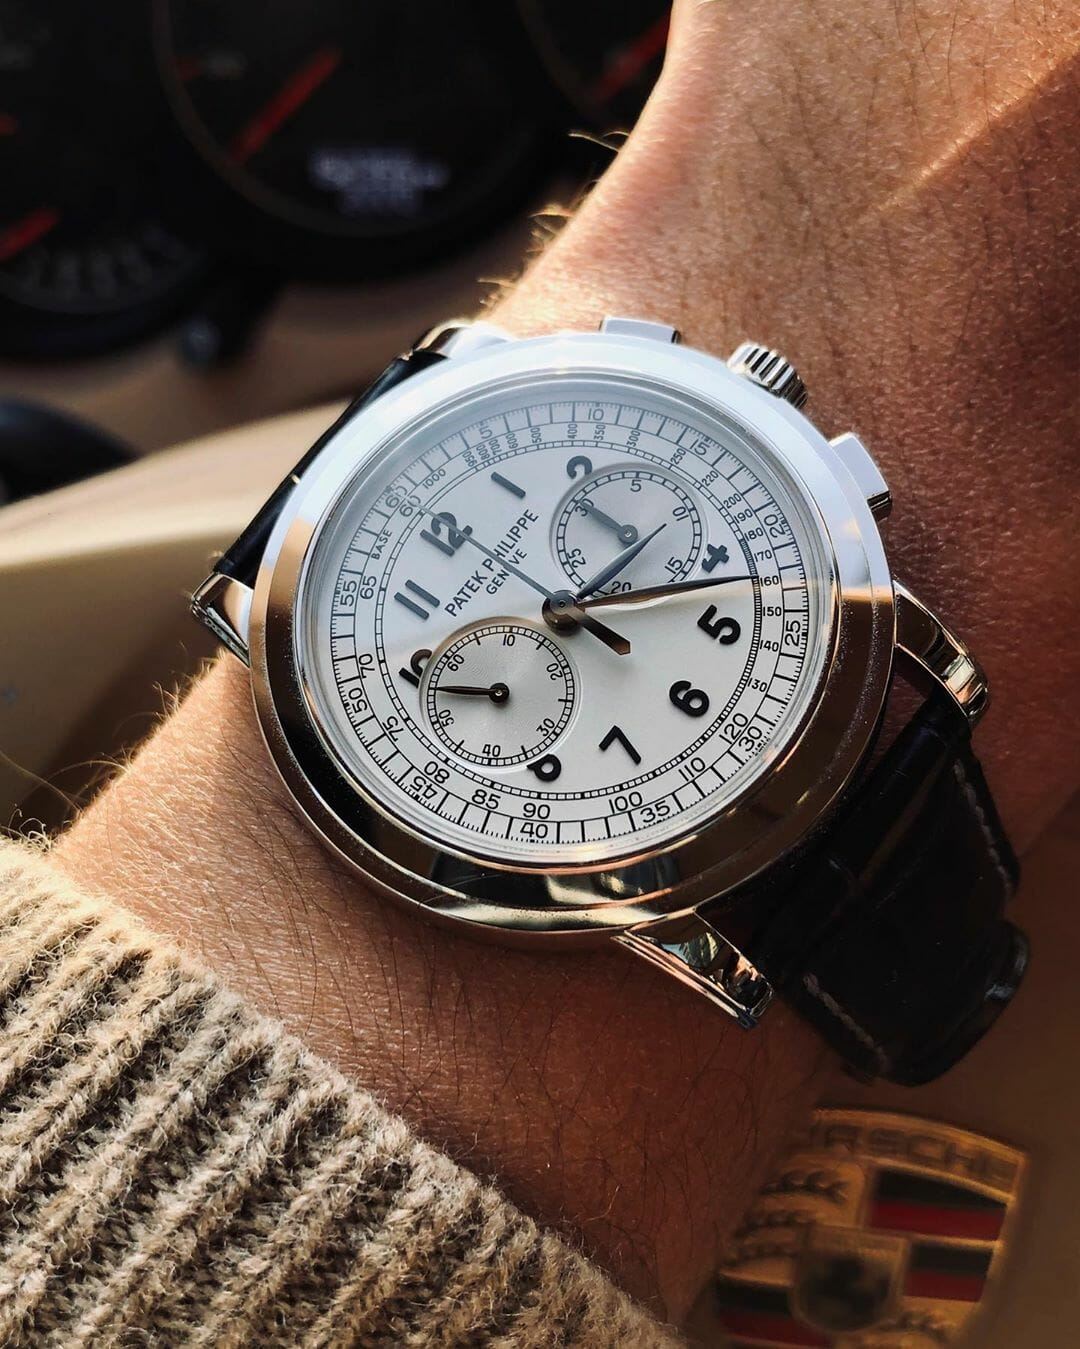 20 Patek Philippe 5070G by IG @watchrookiee